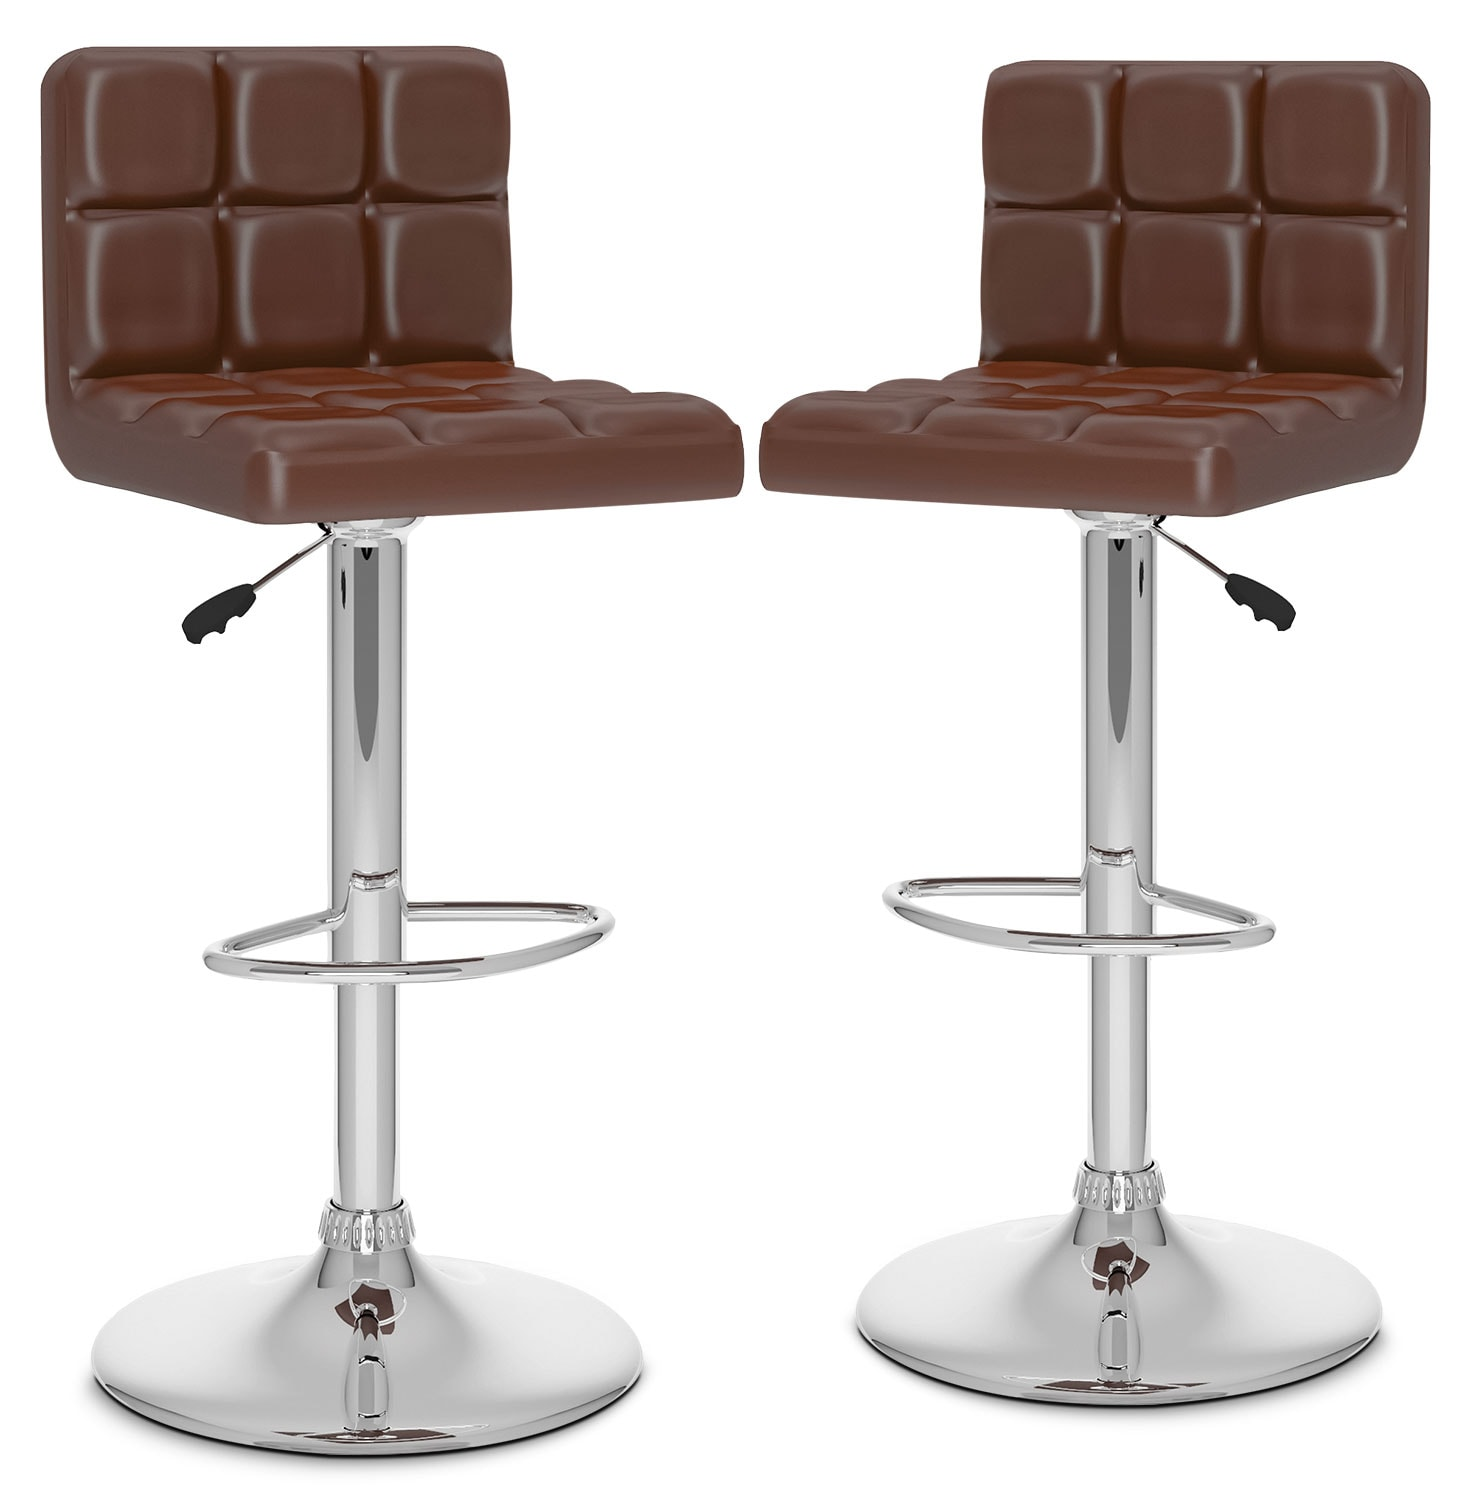 CorLiving High-Back Adjustable Bar Stool, Set of 2 – Brown